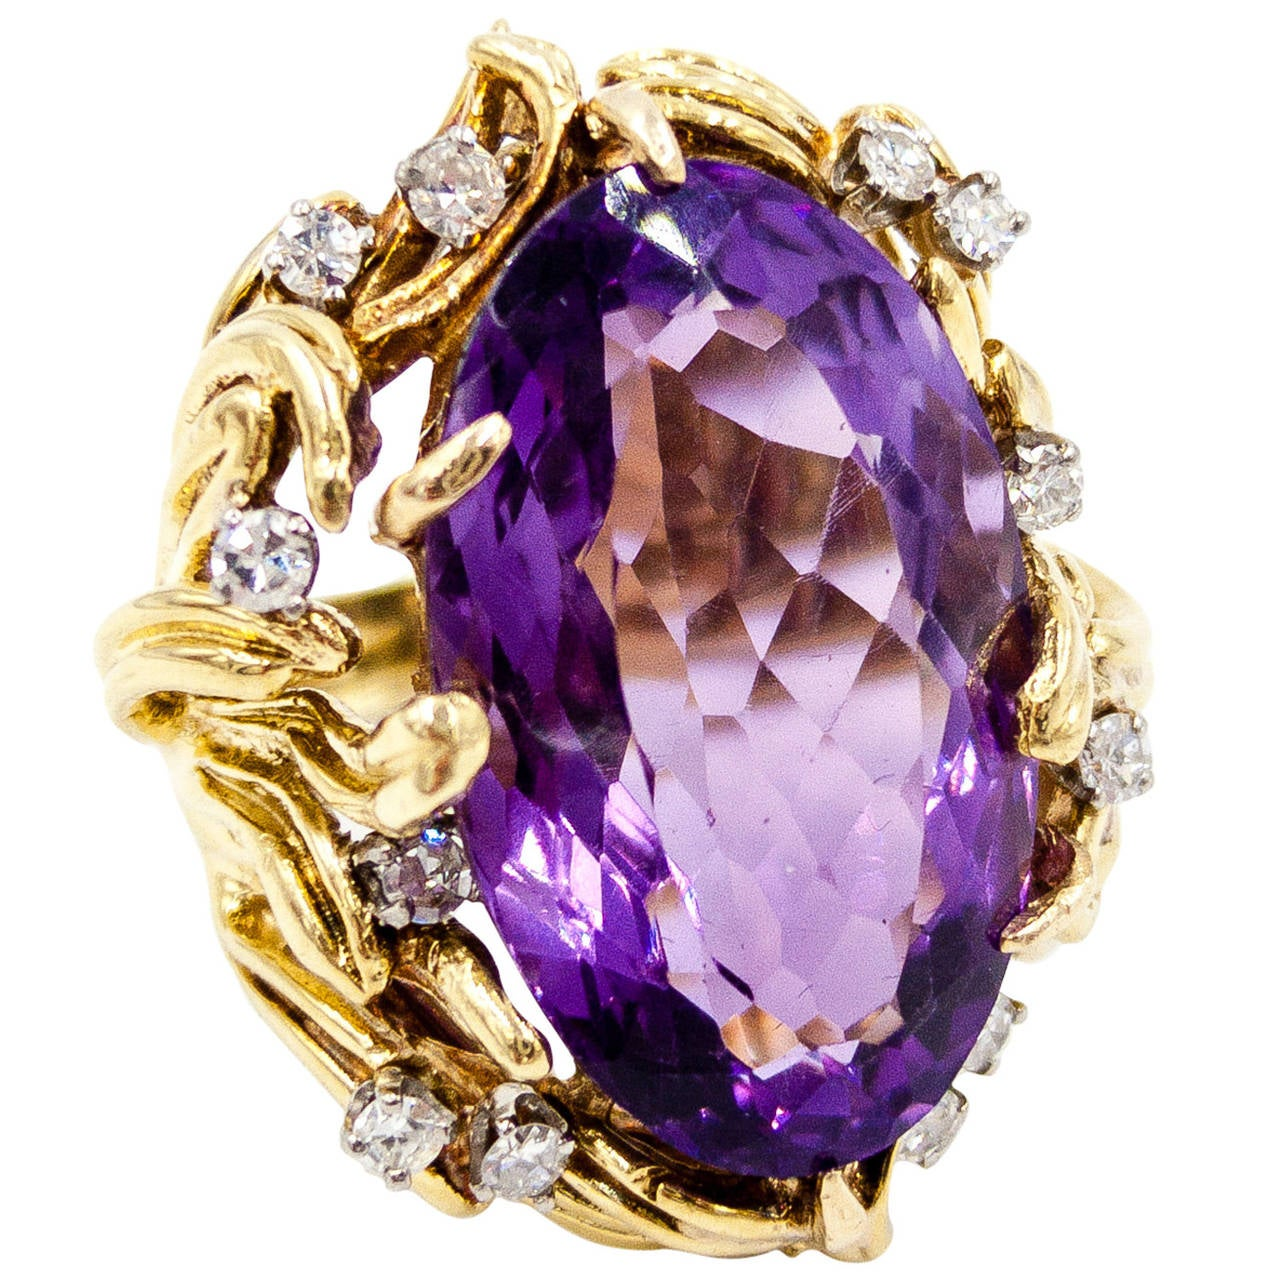 leading shop contemporary rings from ring alex designers by the goodman amethyst direct jewellery